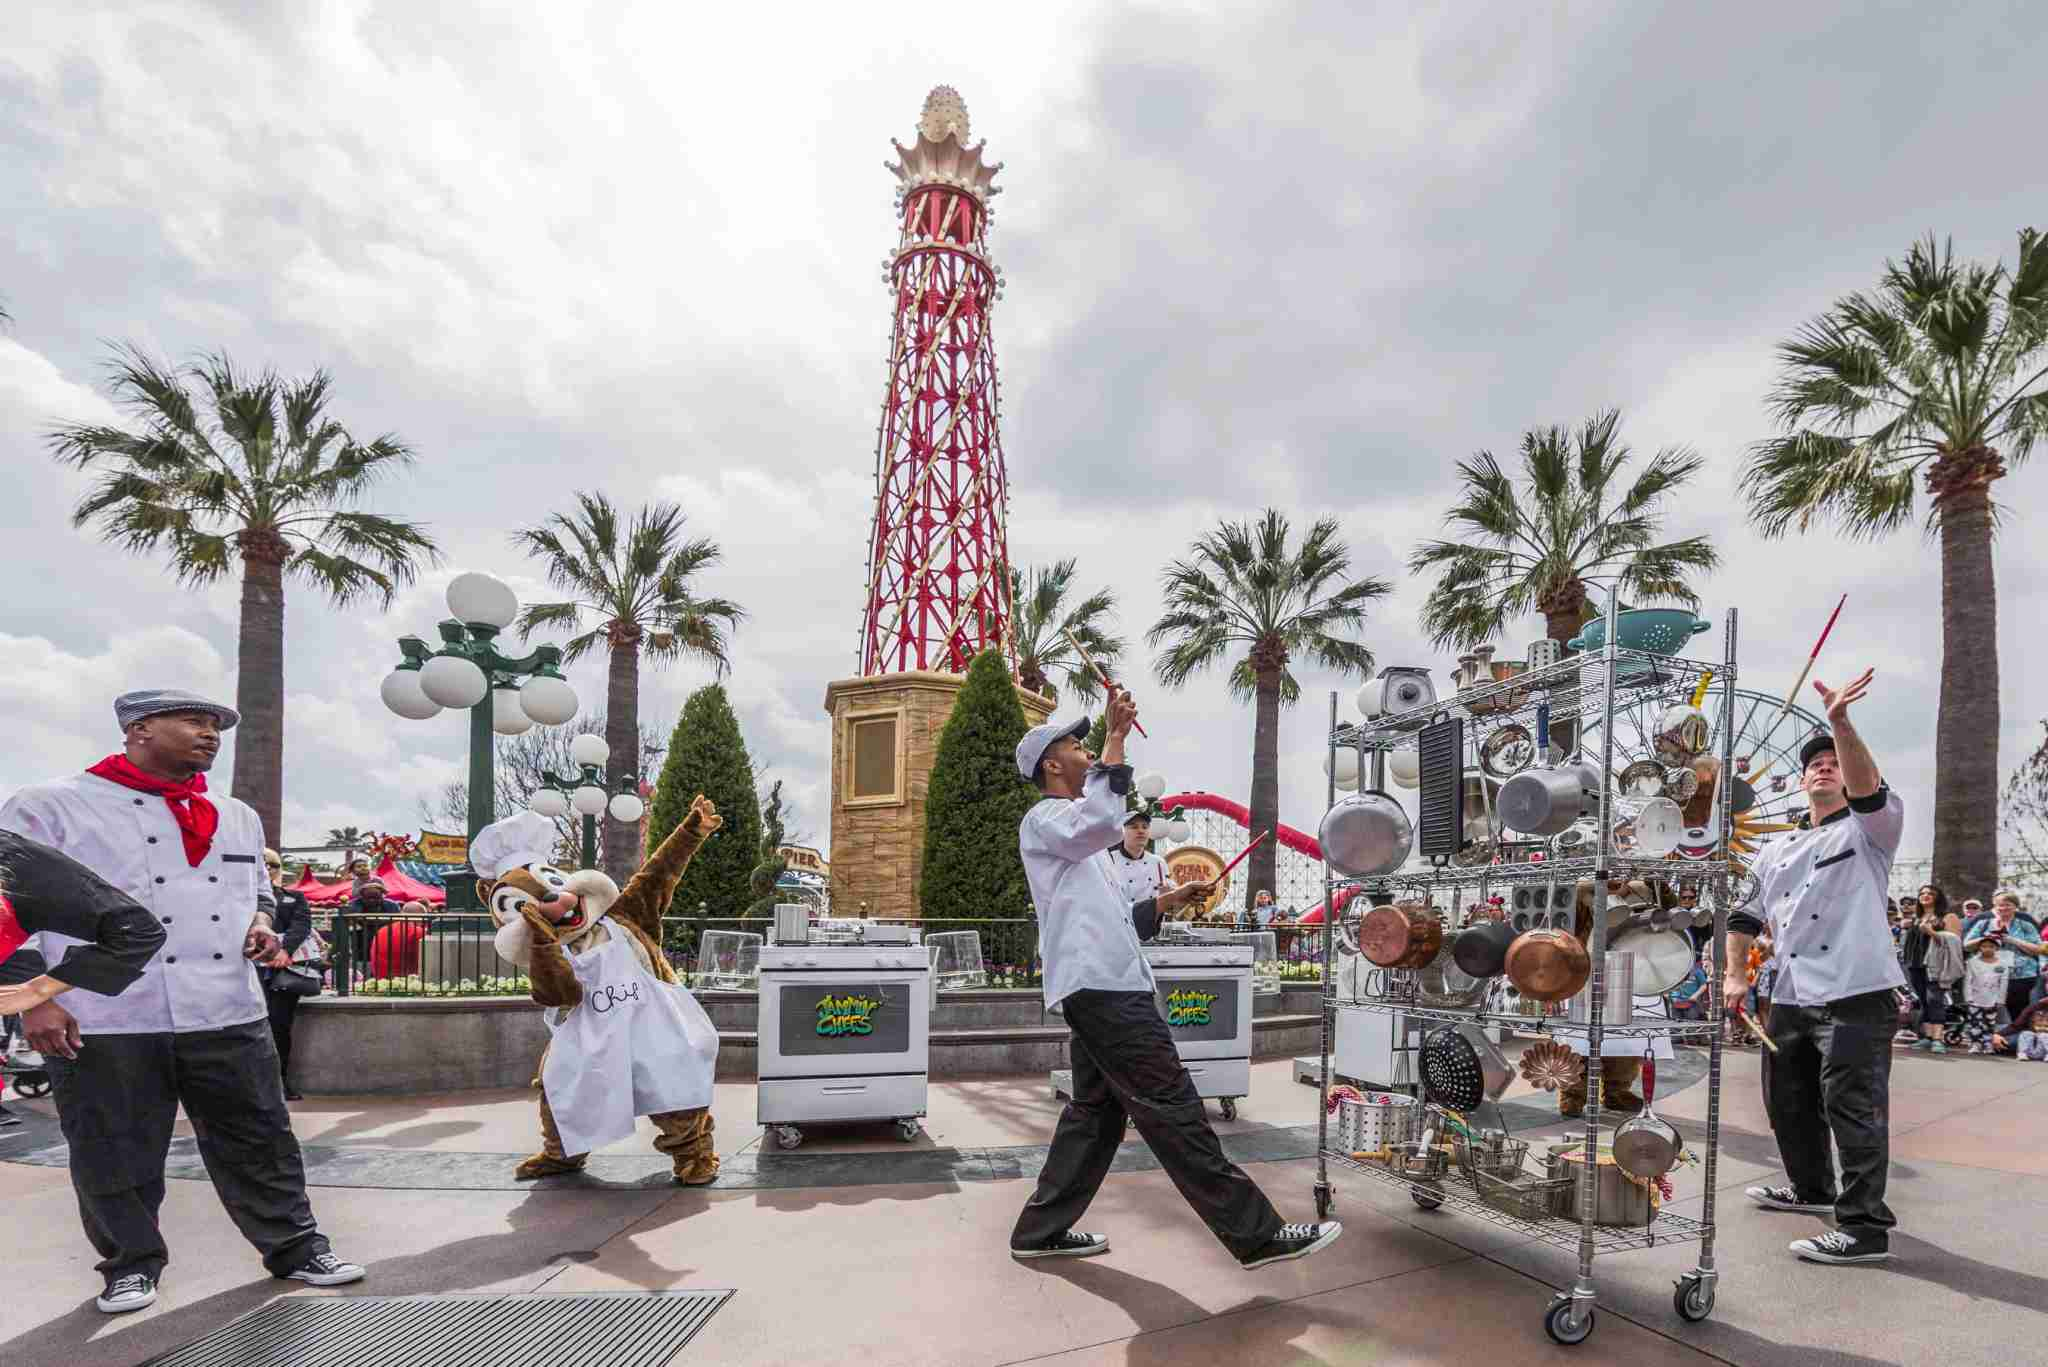 Disney California Adventure Food & Wine Festival Family Friendly Entertainment Ð JamminÕ Chefs